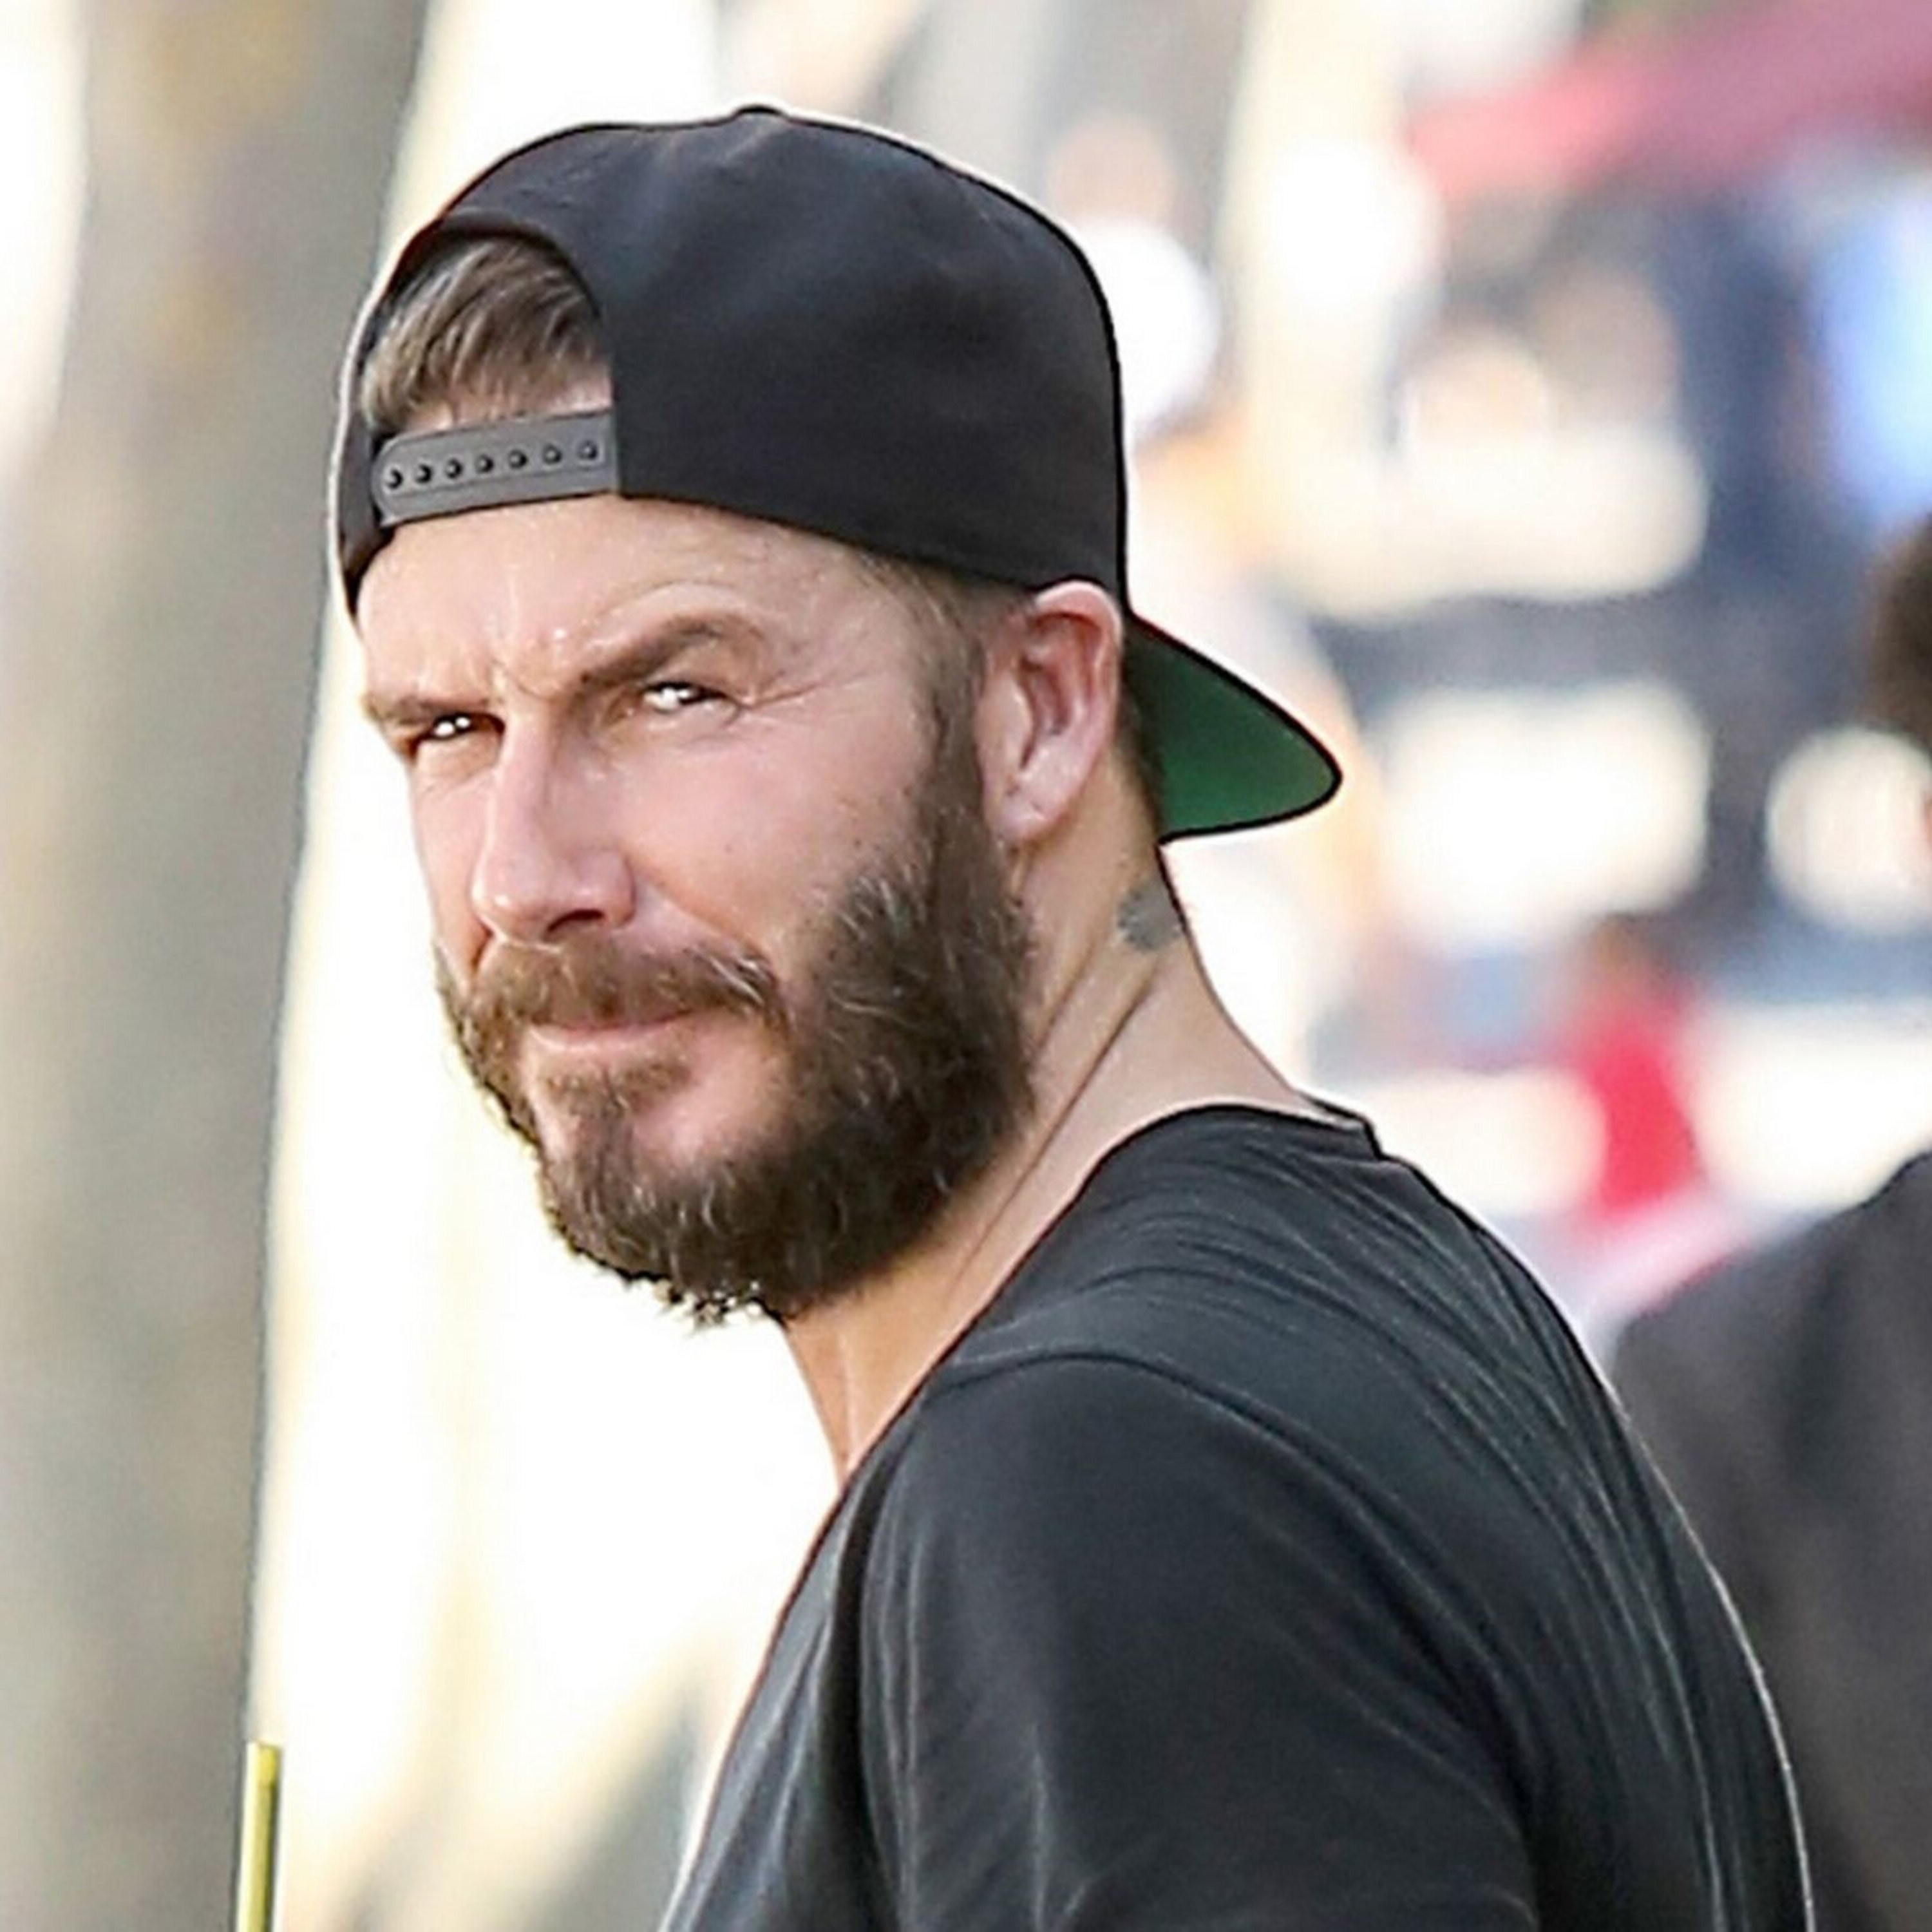 A famous full beard of David Beckhham.